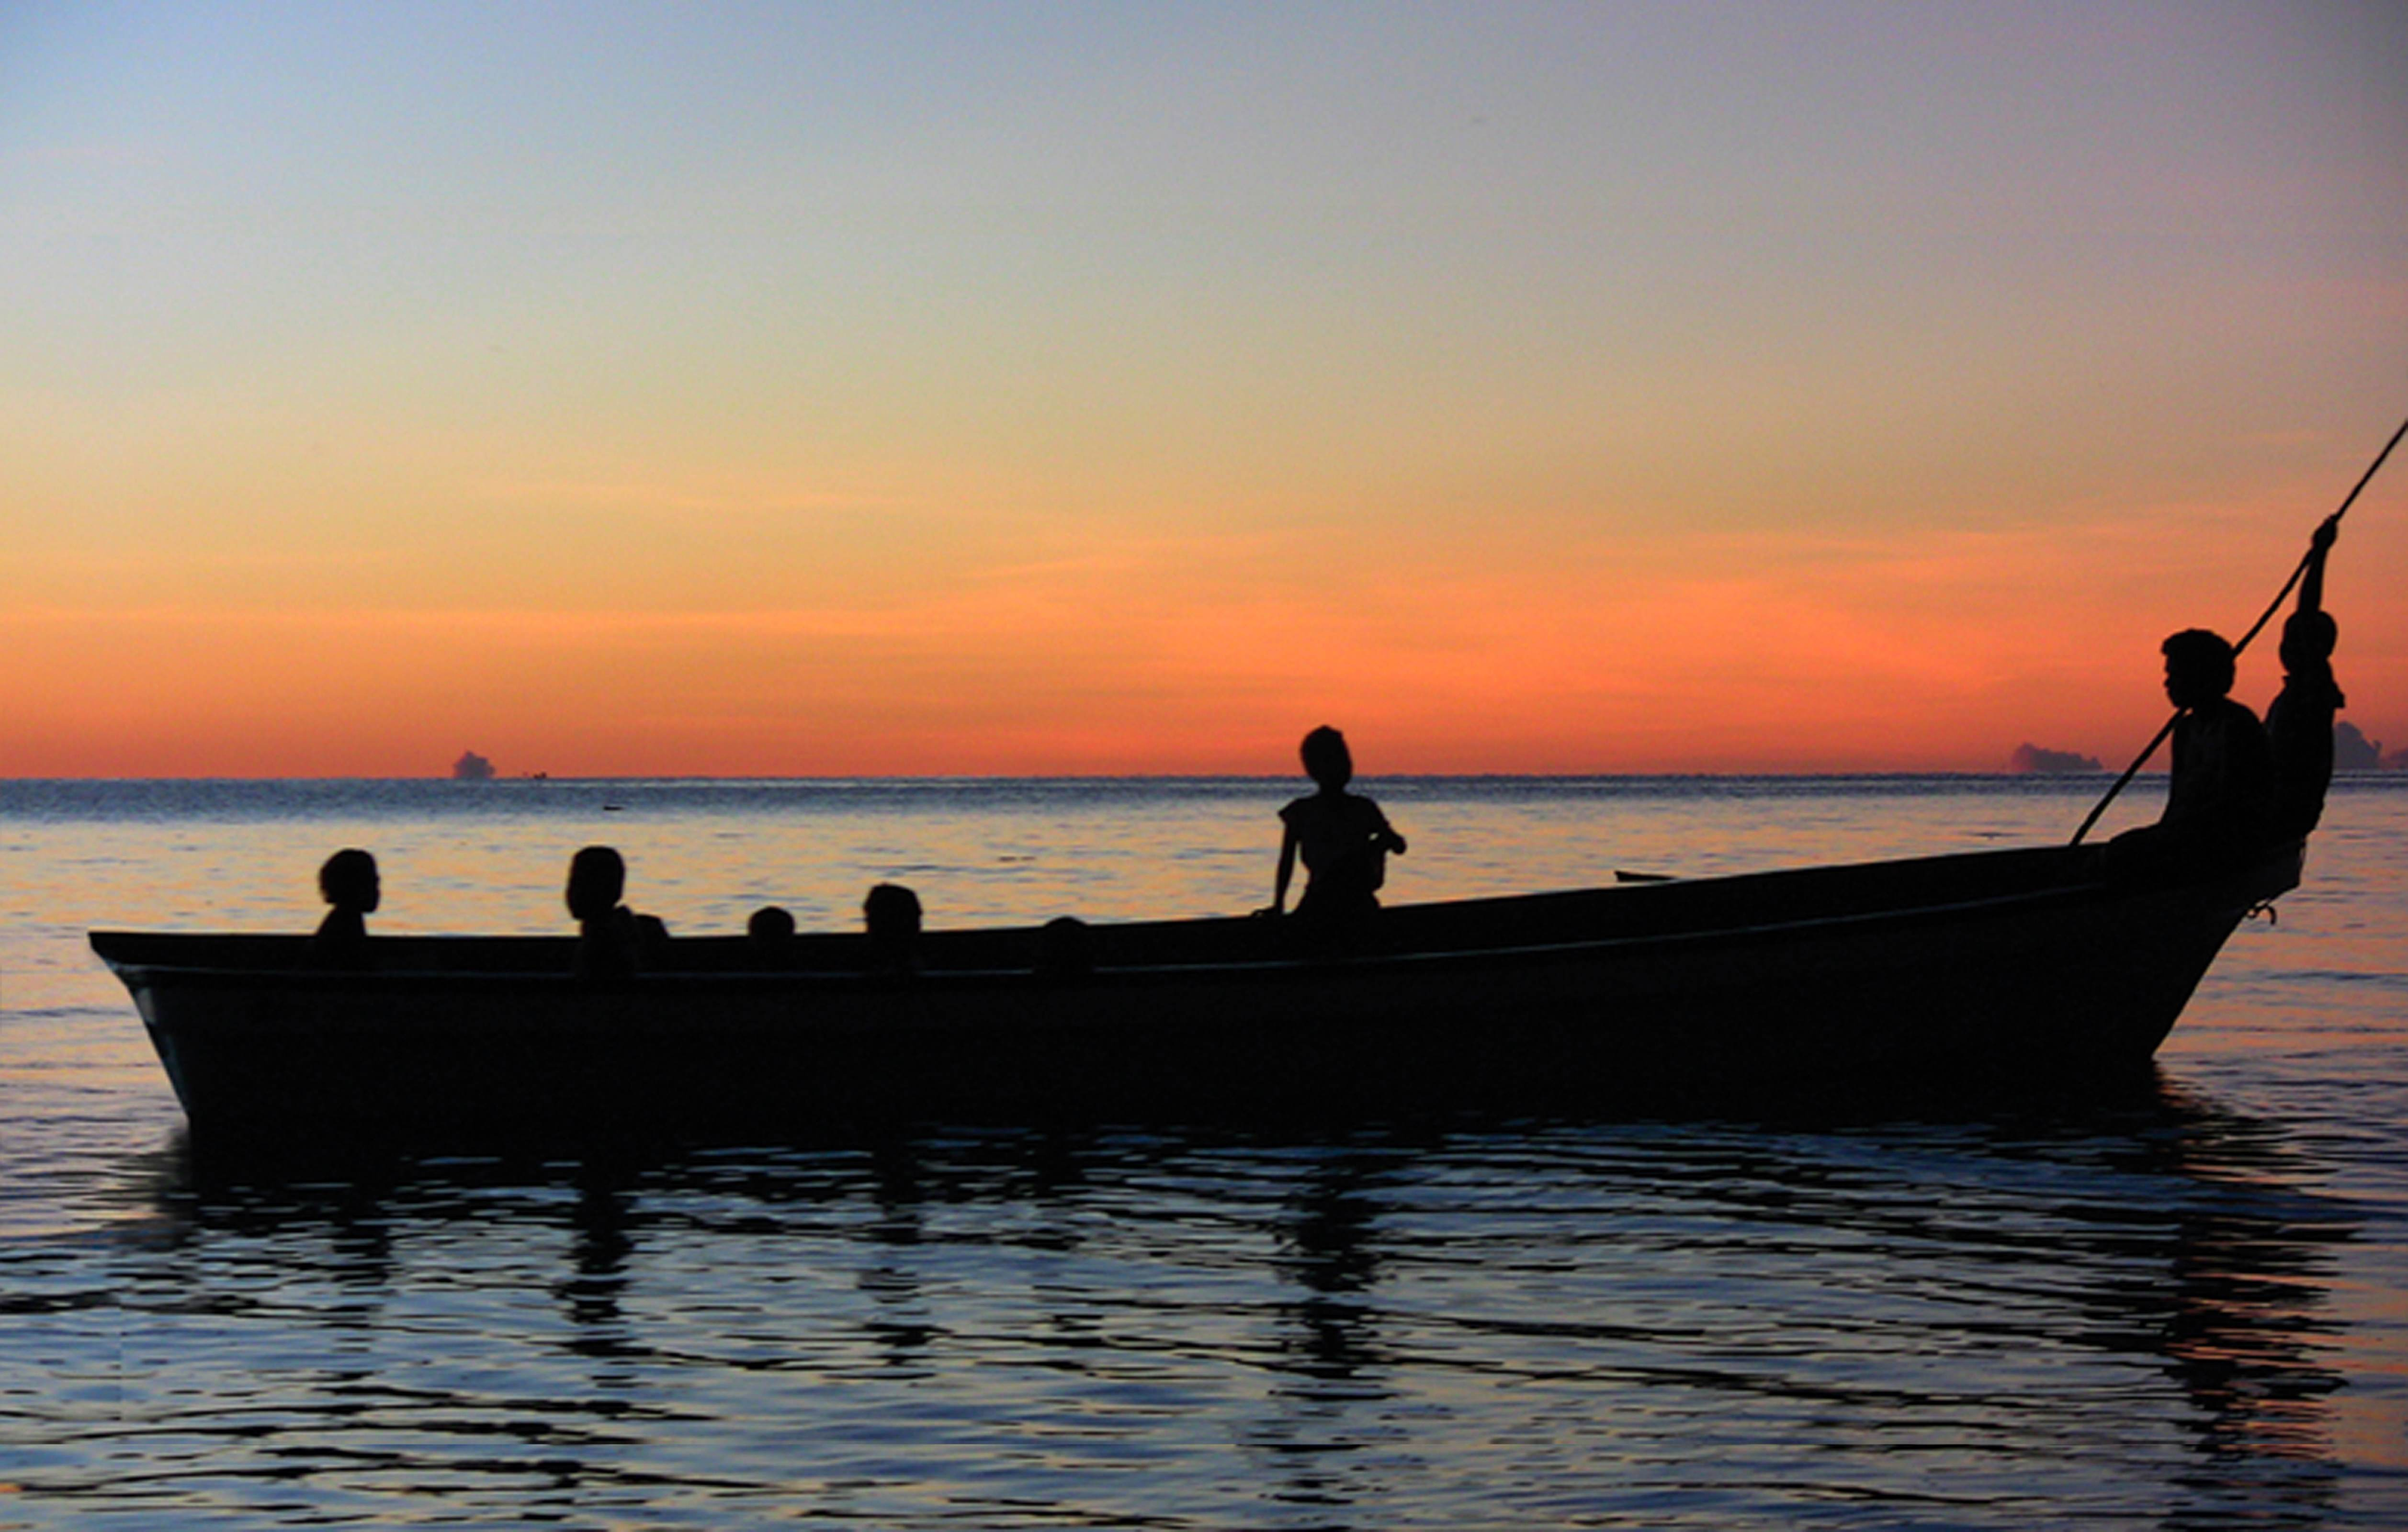 A silhouette of a small boat carrying 8 passengers on tranquil water, with a pink horizon. <div class='credit'><strong>Credit:</strong> A silhouette of a small boat carrying 8 passengers on tranquil water, with a pink horizon. </div>